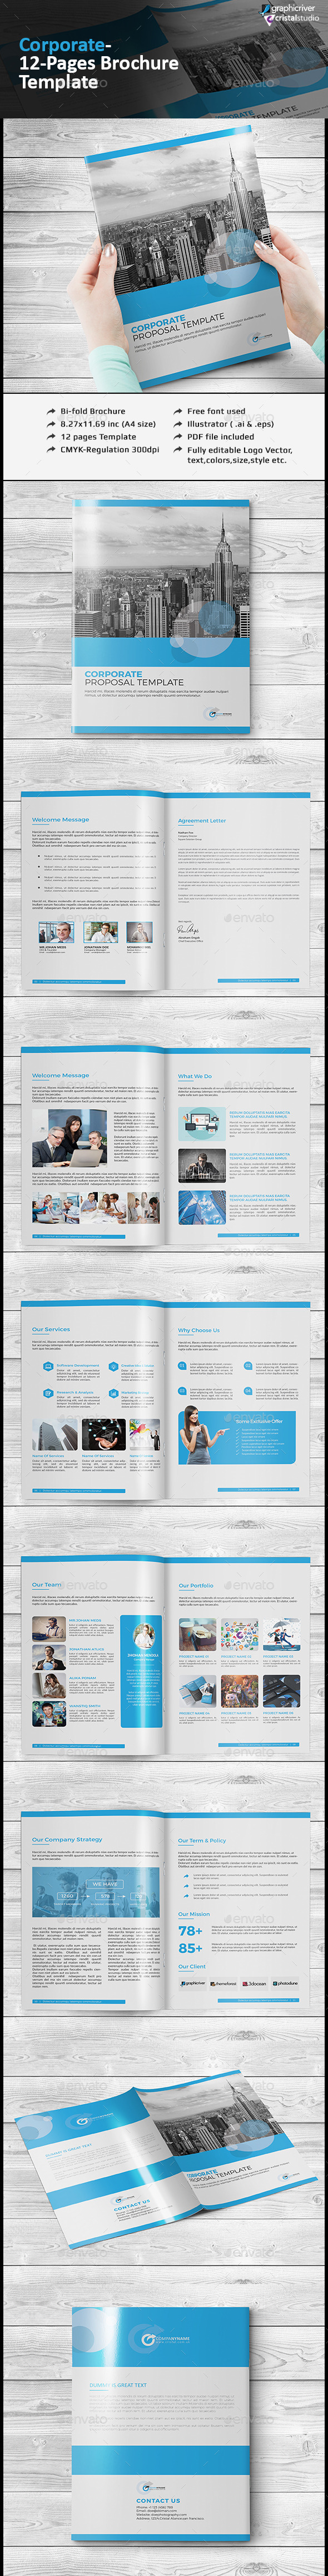 Minimalist Corporate Catalog/Brochure - Brochures Print Templates